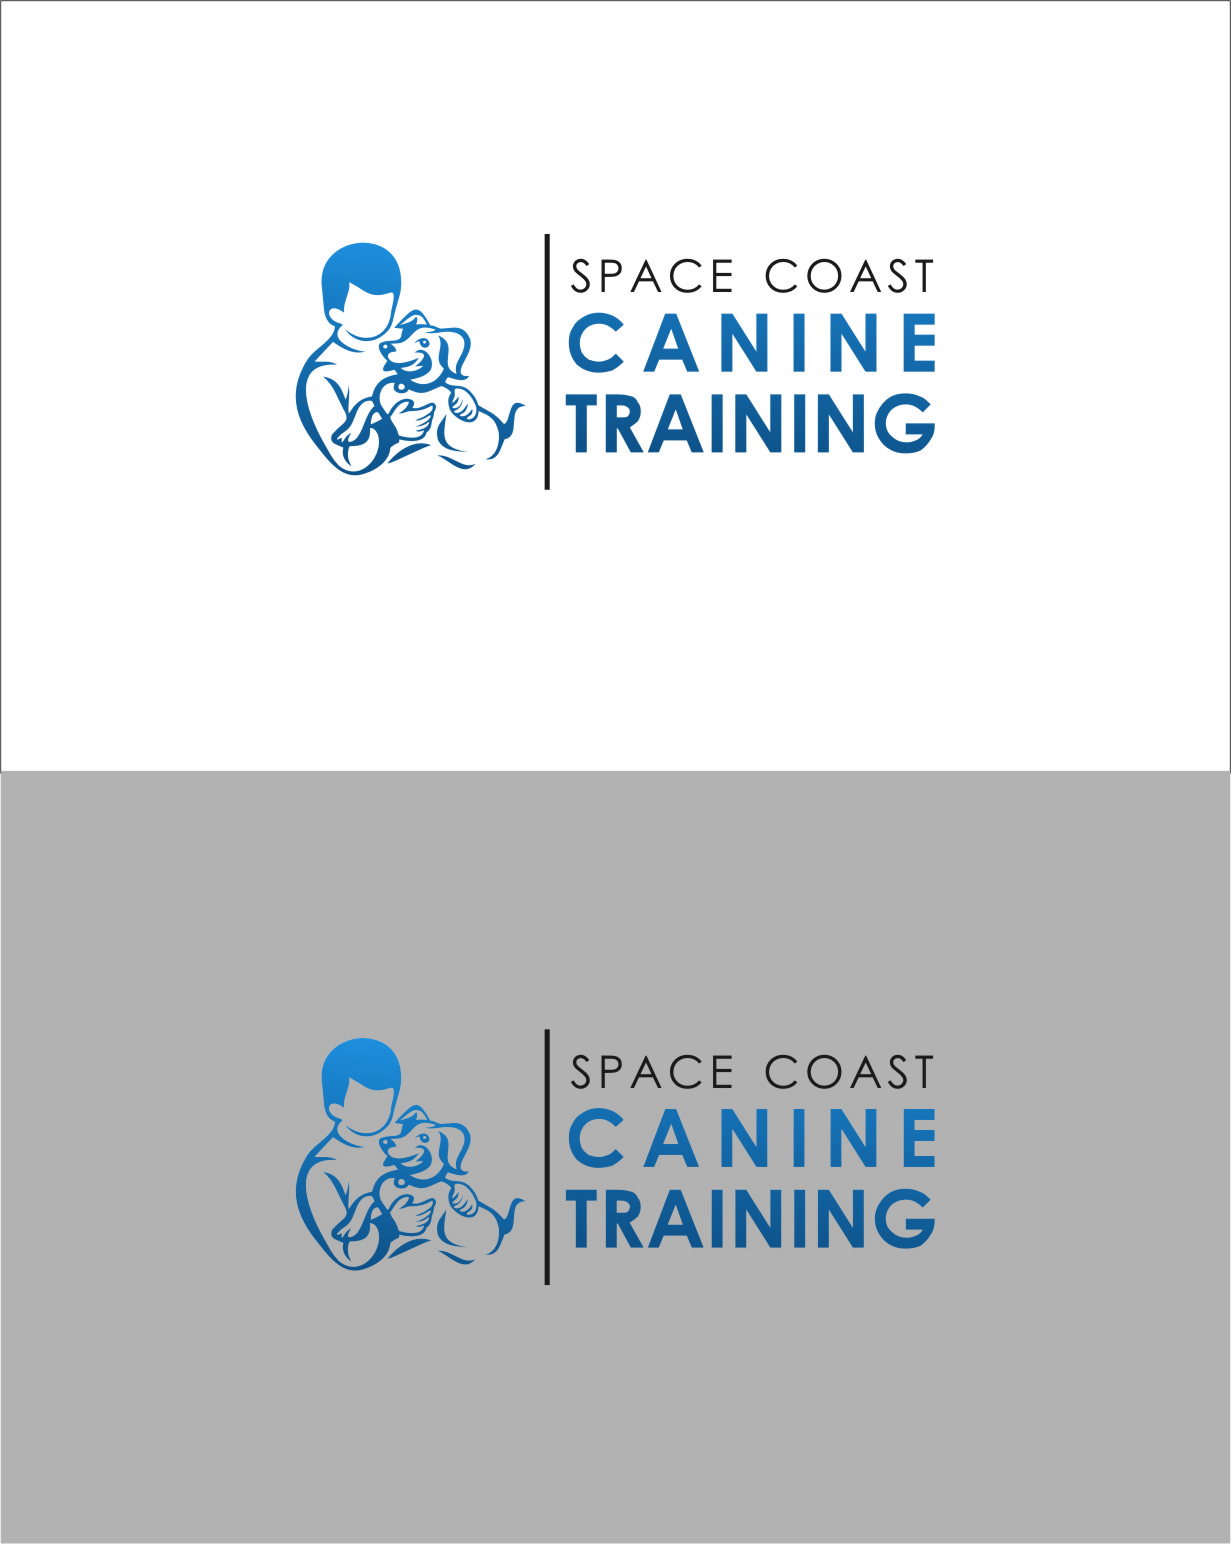 Logo Design by Ngepet_art - Entry No. 80 in the Logo Design Contest Creative Logo Design for Space Coast Canine Training.